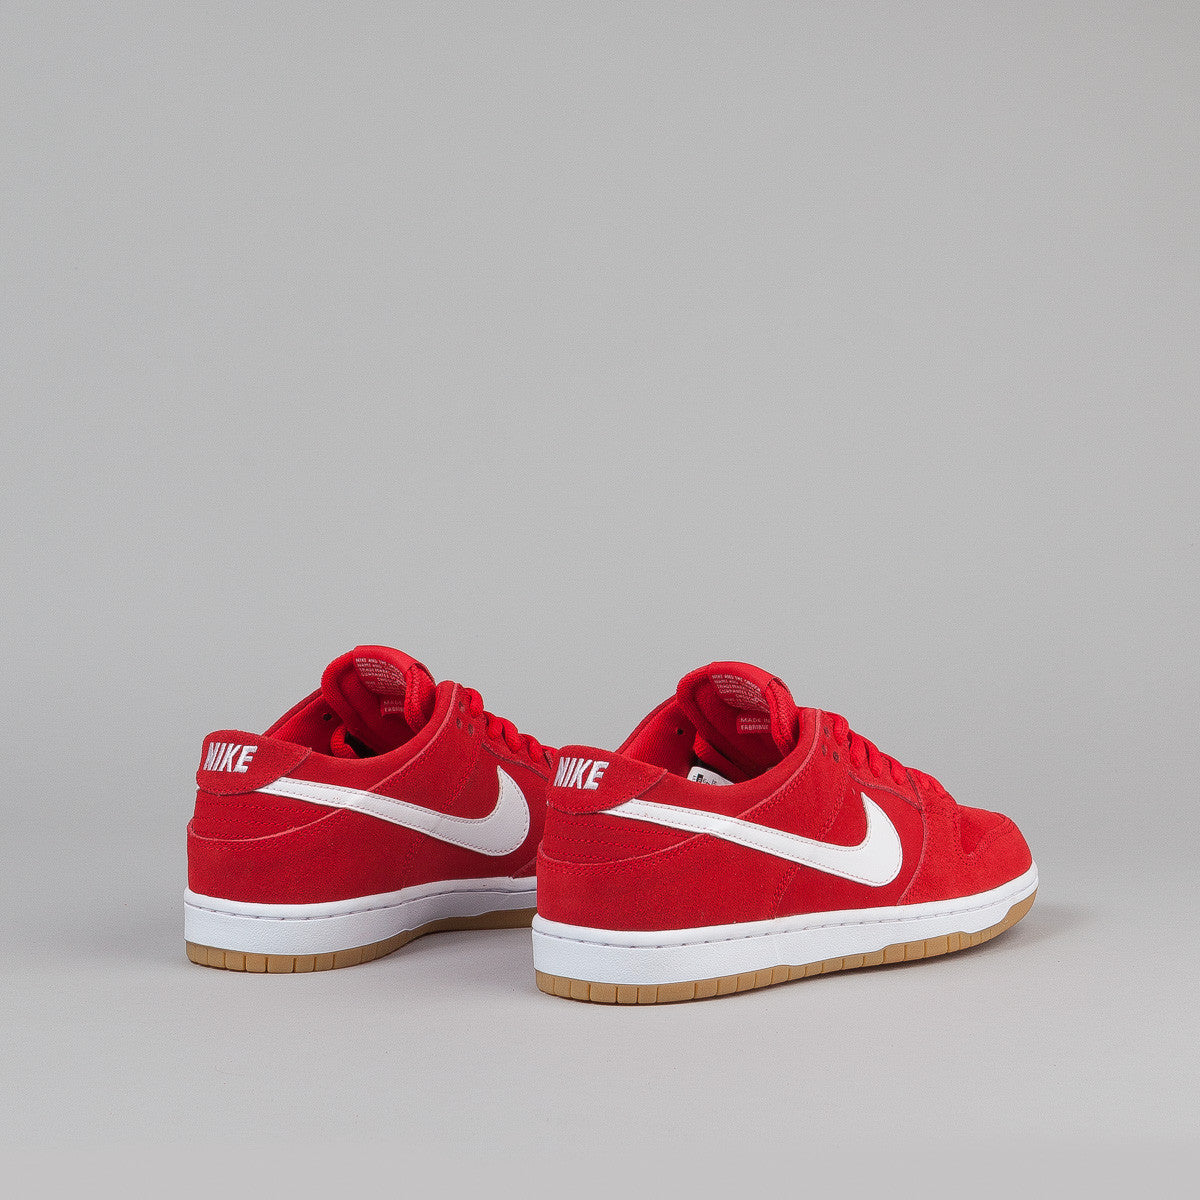 hot sale online 1c39f faae5 NikeSBDunkLowProIWUniversityRedWhite-GumLightBrownFeature Nike SB Dunk Low  Pro Ishod Wair Shoes - University Red White - Light Brown .